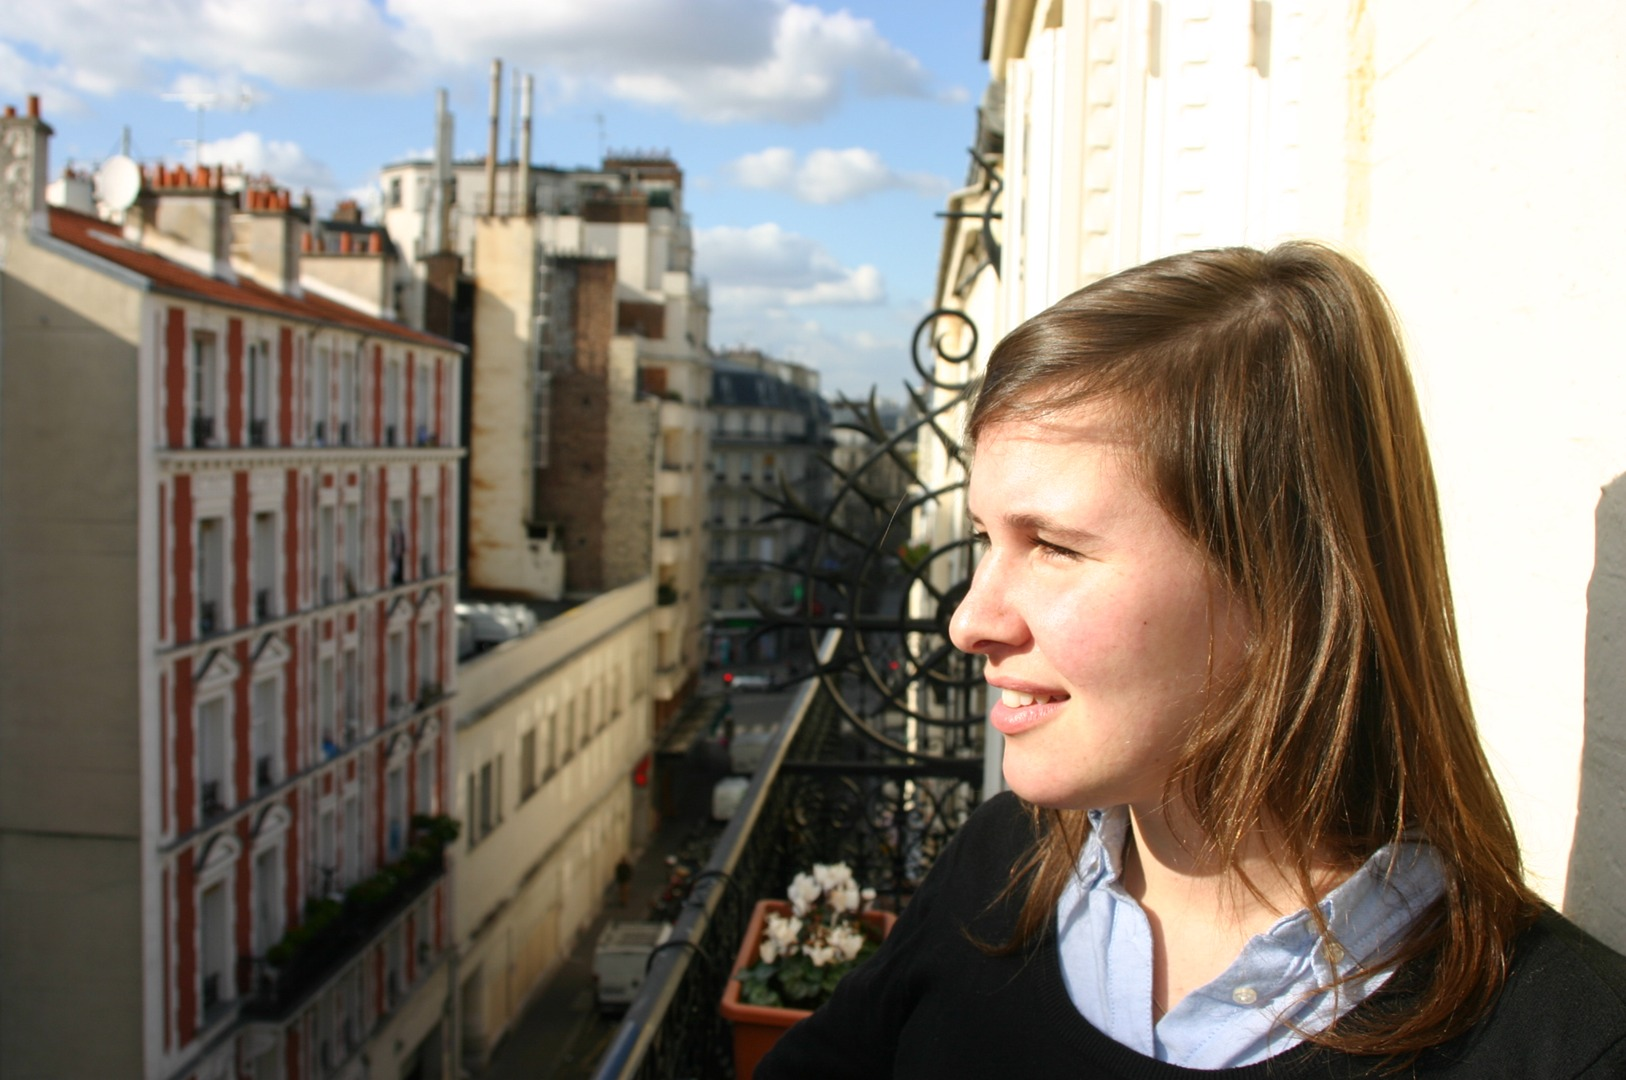 Jewish Tour in the 17th district of Paris